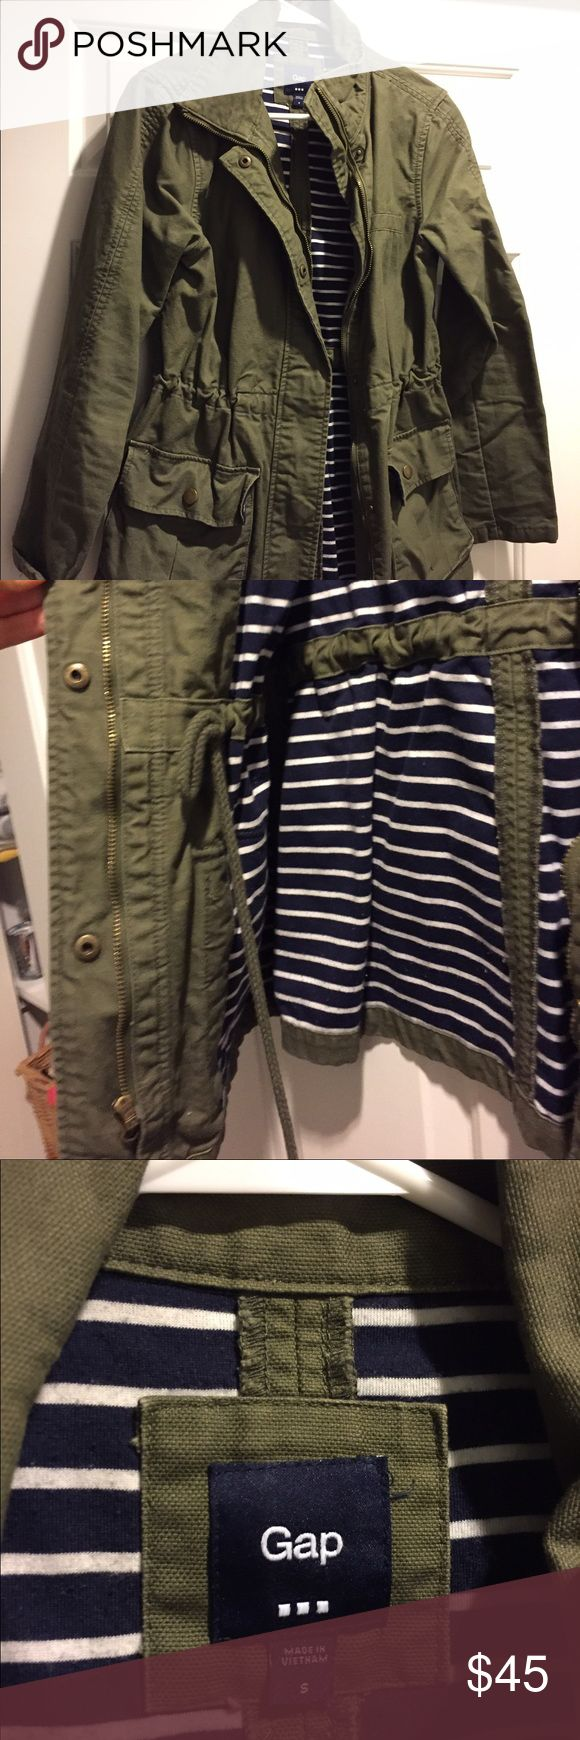 Women's Utility Jacket Women's Utility Jacket from Gap. Olive green outside, blue and navy white stripe inside. This is a good fall coat, has a drawstring on the inside to add shape, also zips up and buttons. Excellent condition, no damages. GAP Jackets & Coats Utility Jackets